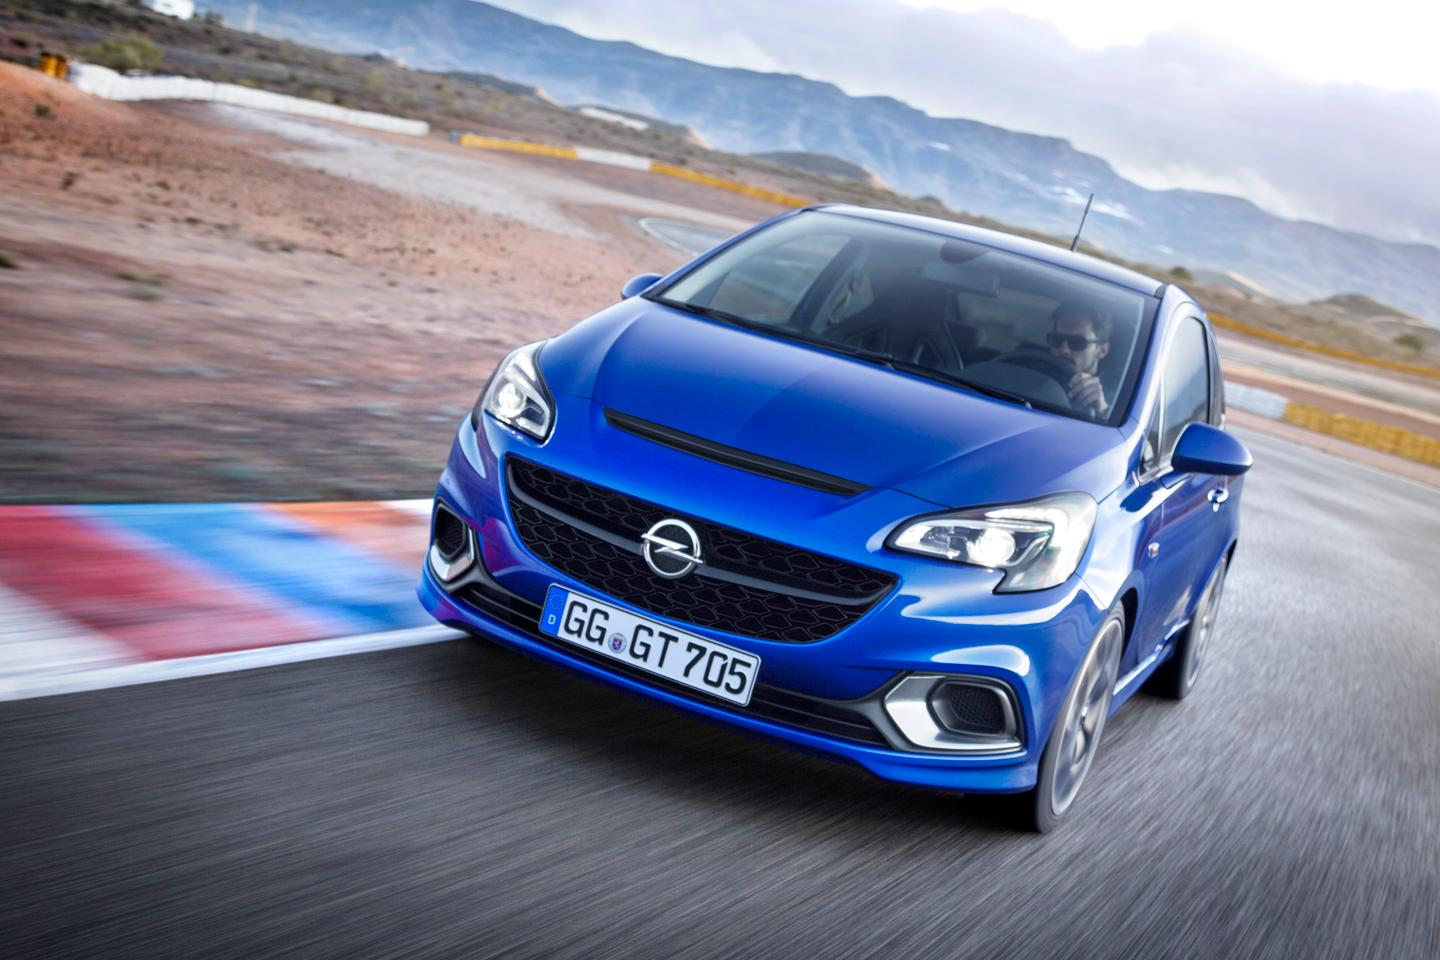 The Corsa OPC is powered by a 1.6-liter ECOTEC engine